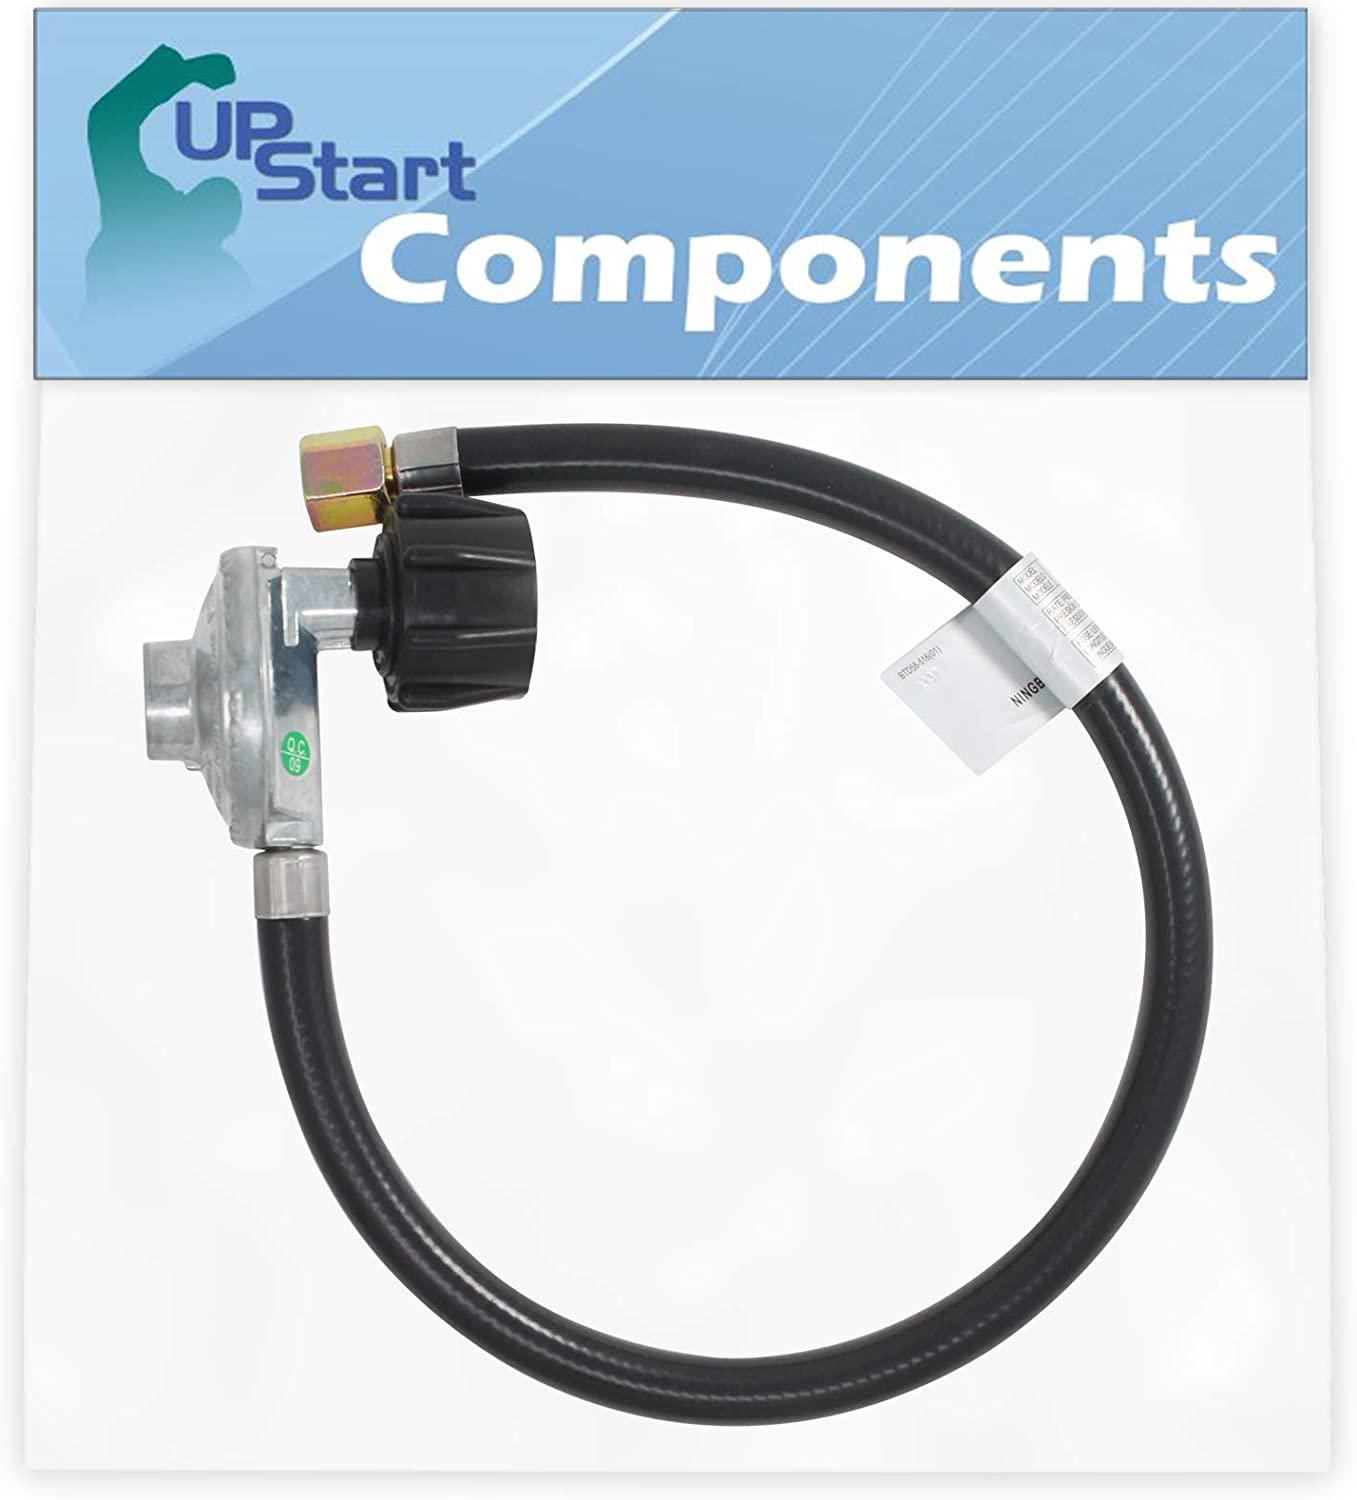 UpStart Components BBQ Gas Grill Propane Regulator Hose Replacement Parts for Weber 7502 - Compatible Barbeque 21 Inch QCC1 Regulator and Hose Kit